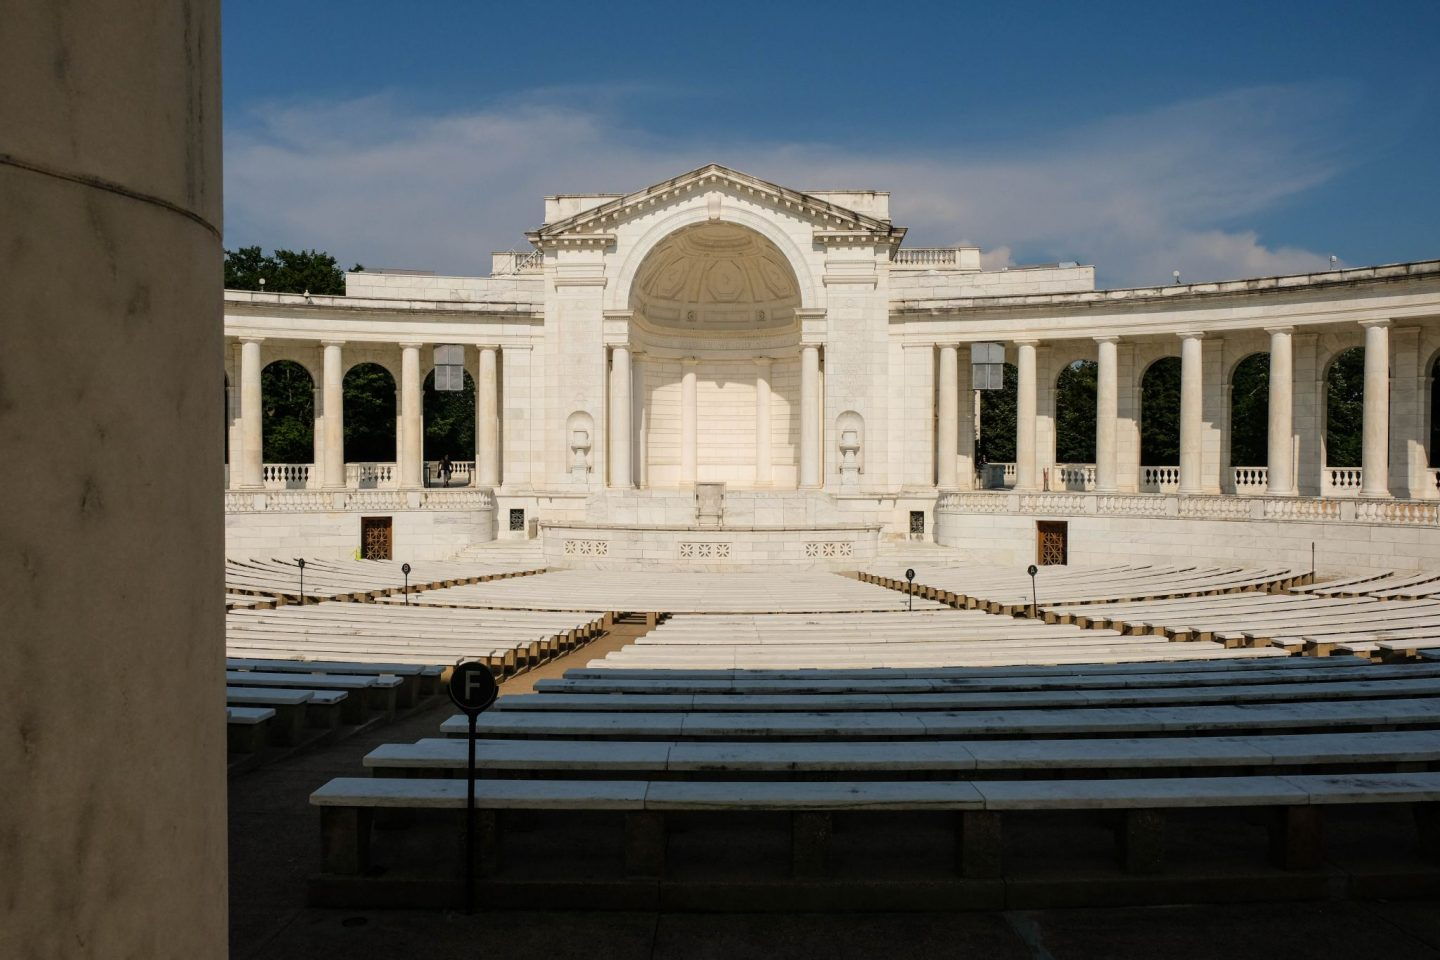 WHAT TO DO FOR A DAY TRIP TO ARLINGTON